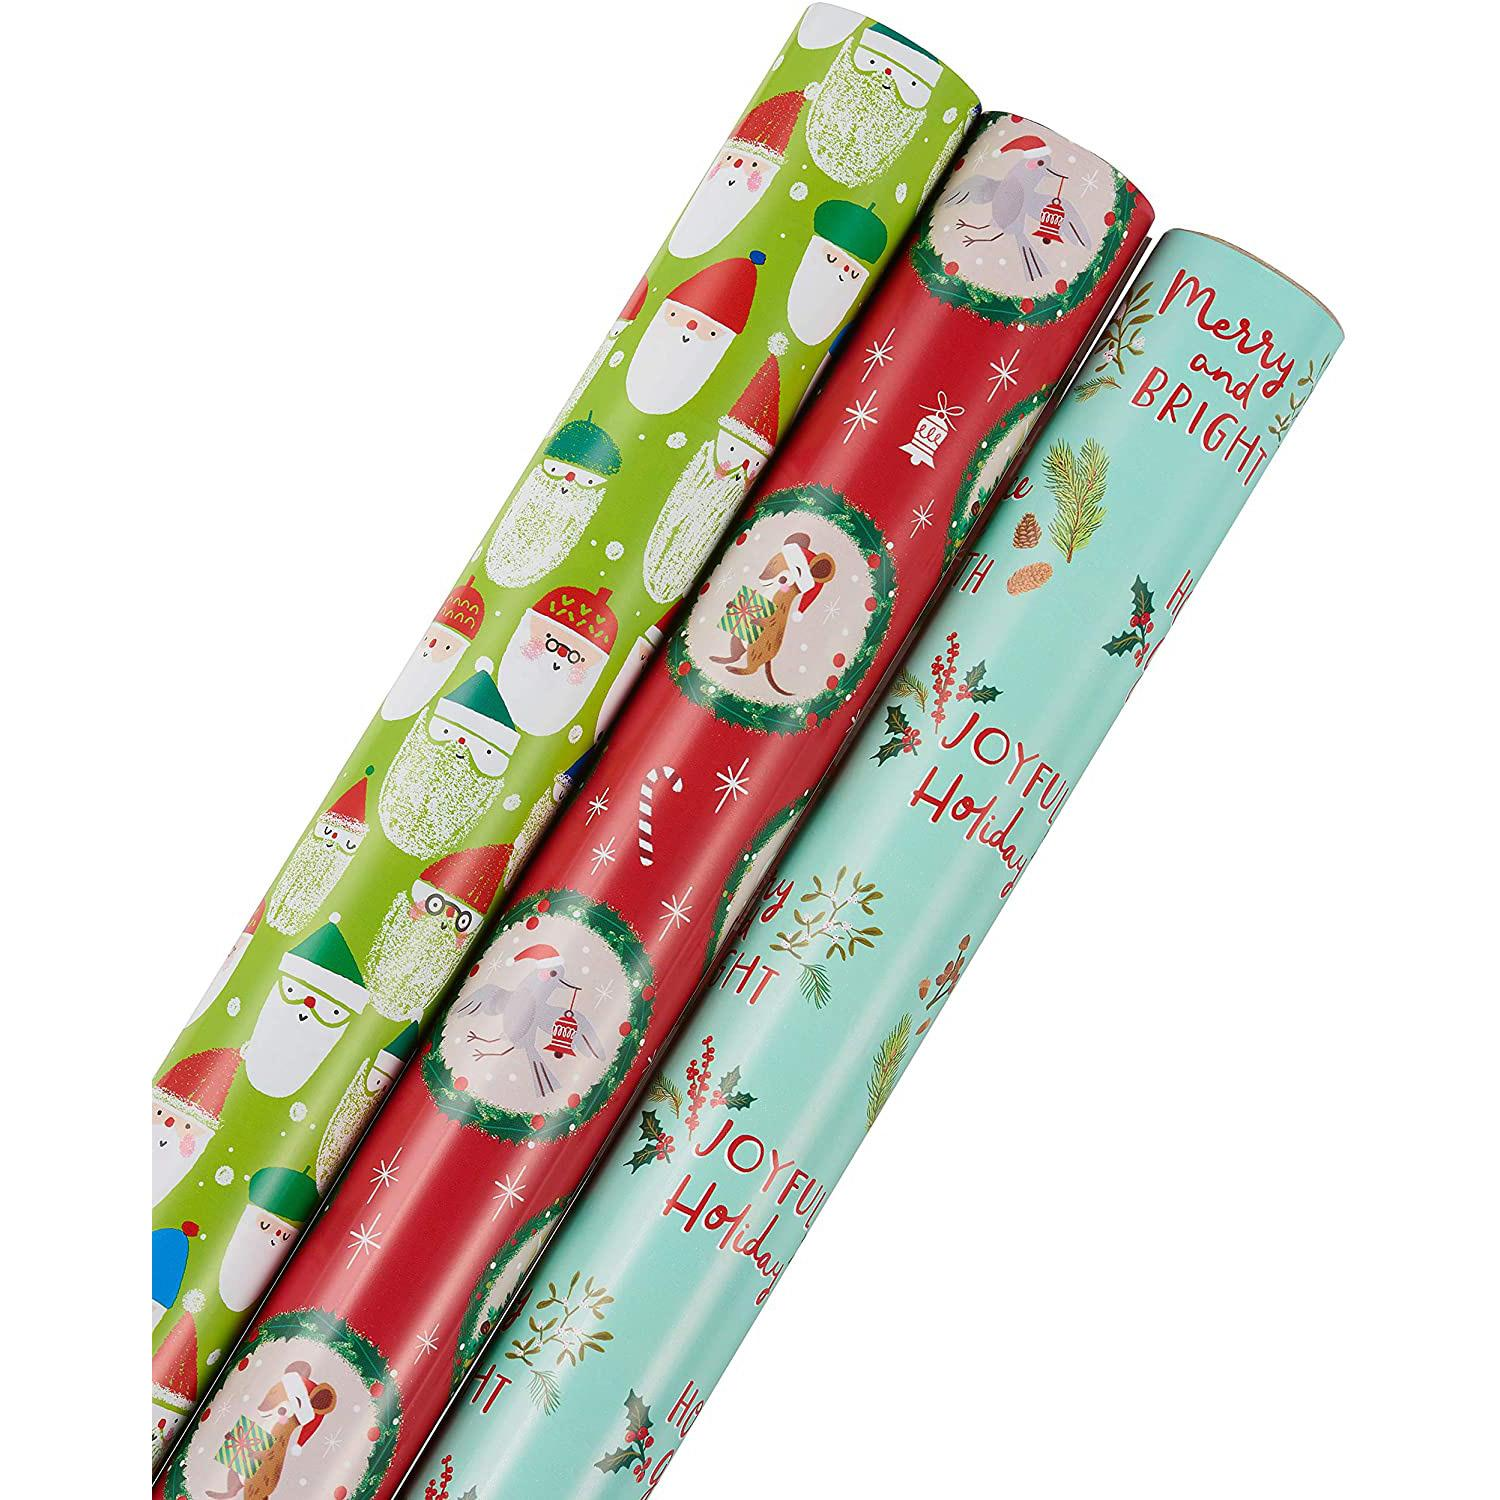 3-Rolls of 30in Papyrus Christmas Wrapping Paper for $8.66